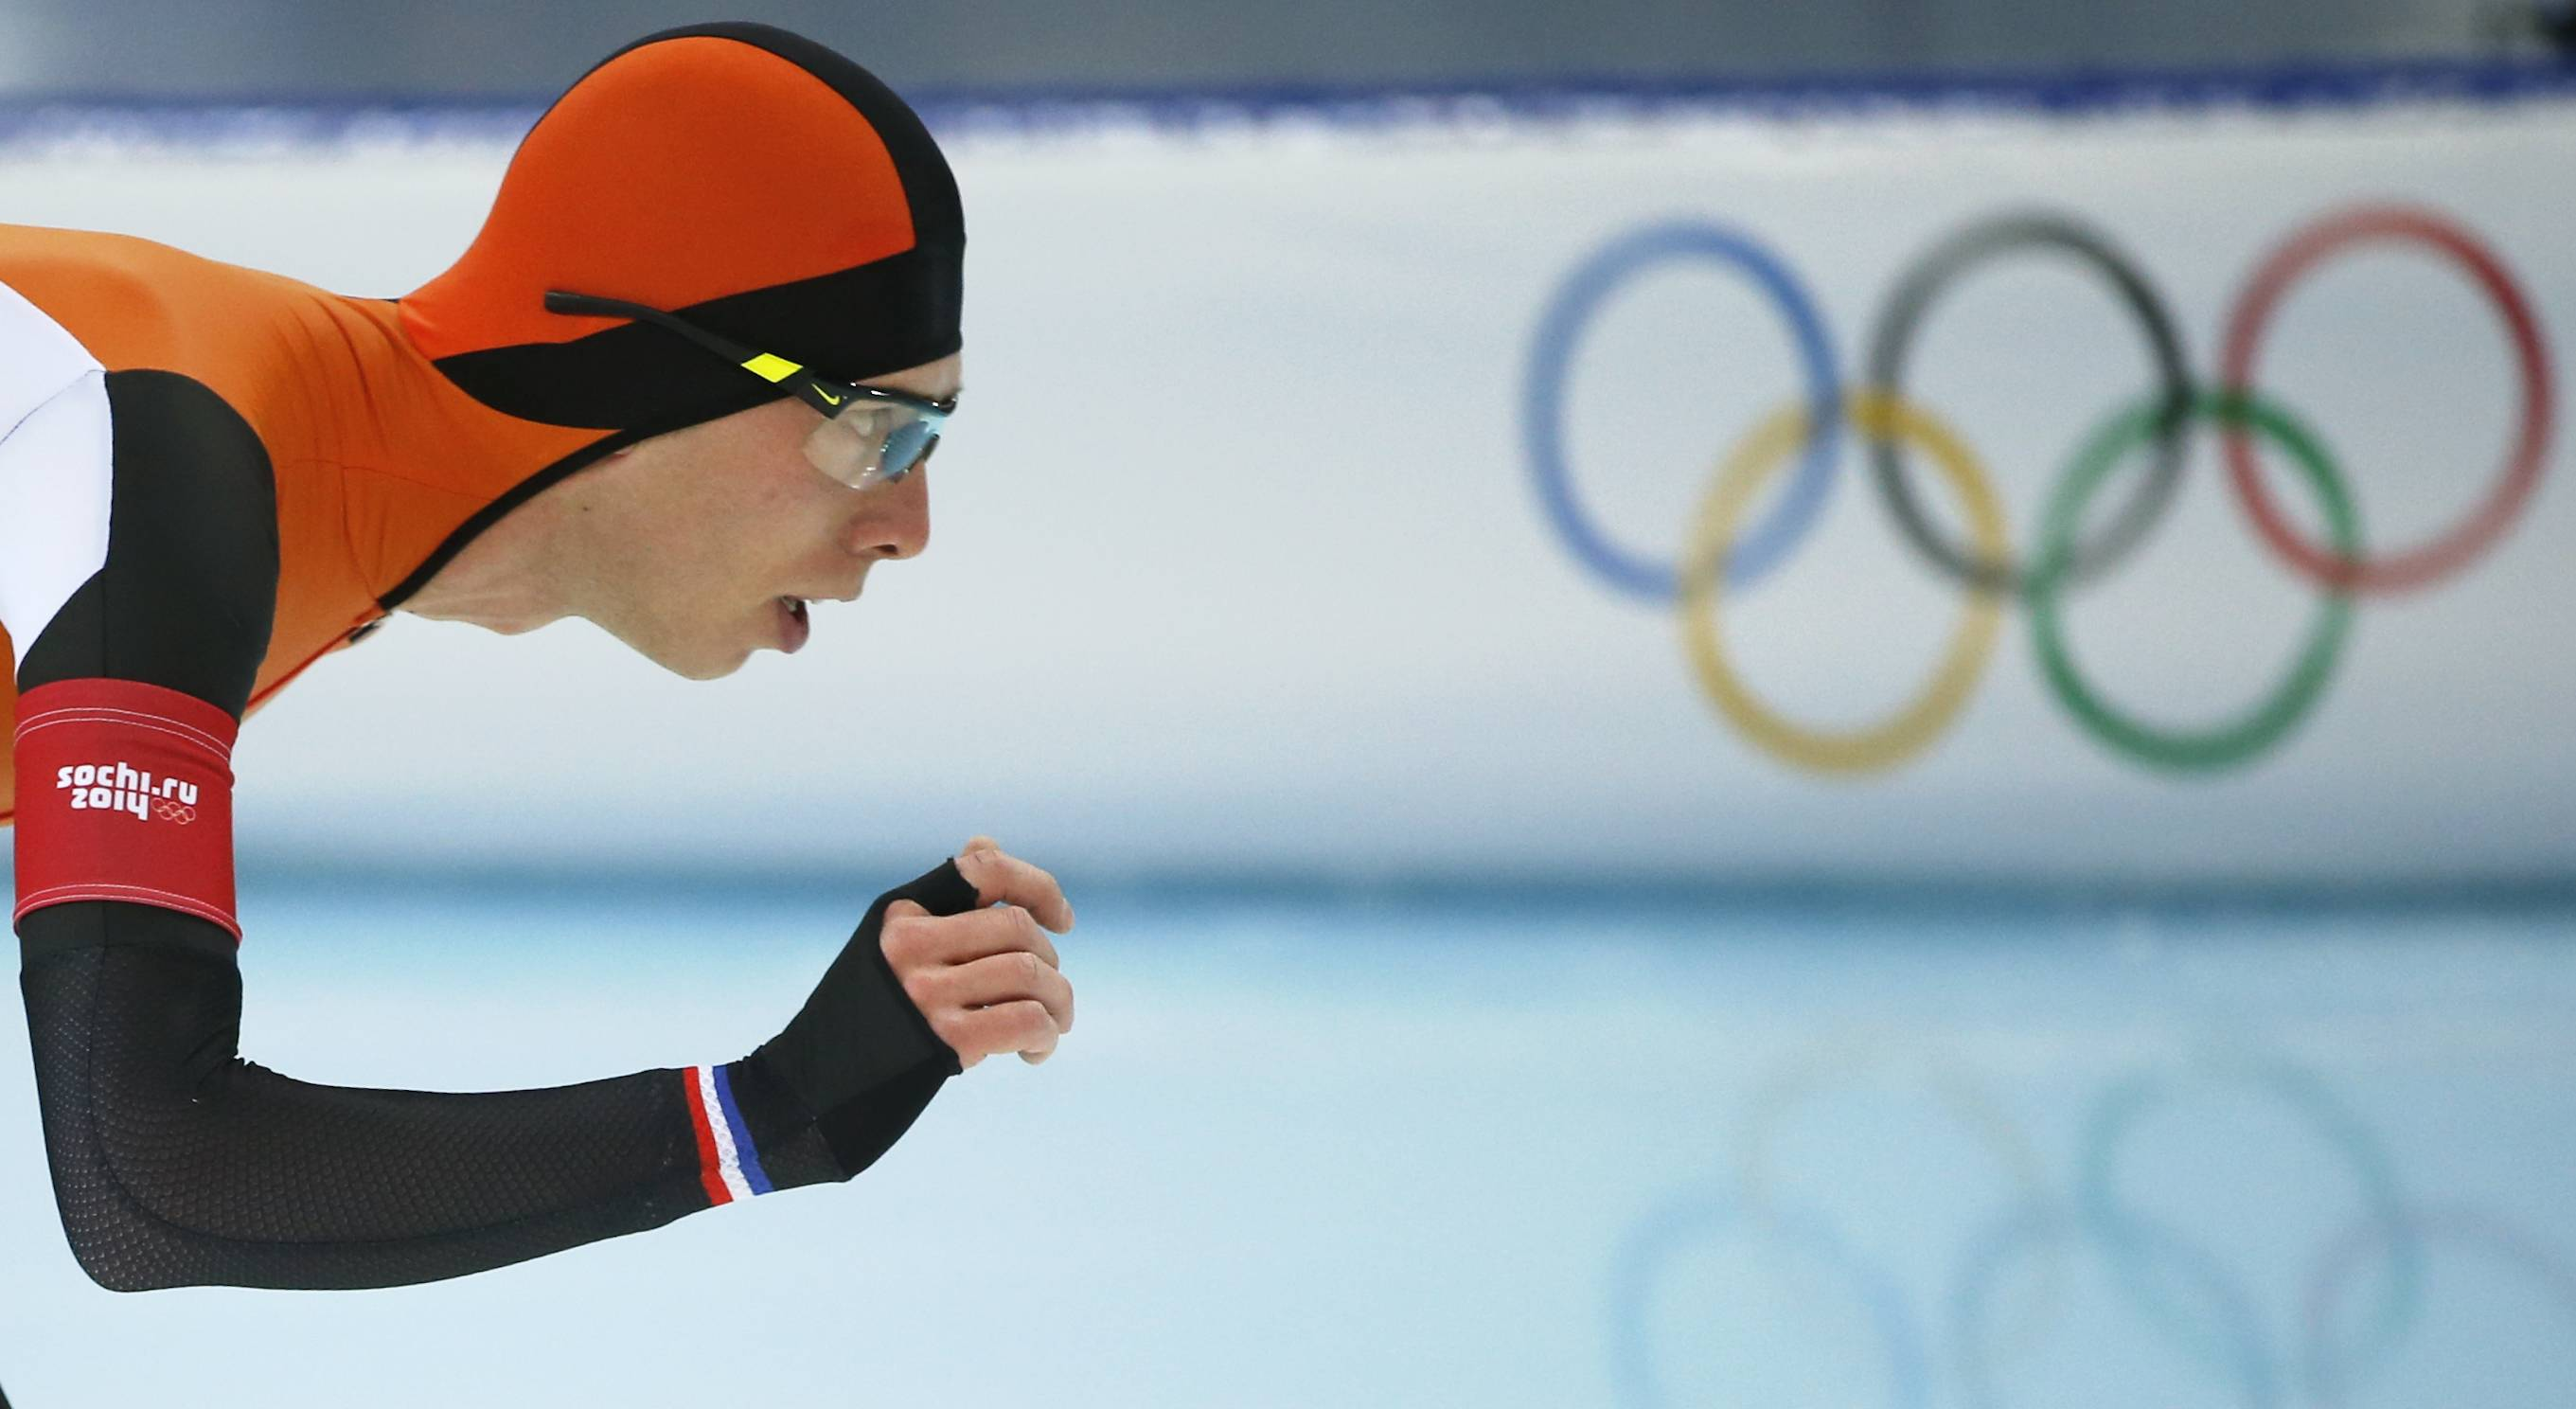 Gold medallist Jorrit Bergsma of the Netherlands competes in the men's 10,000-meter speedskating race .